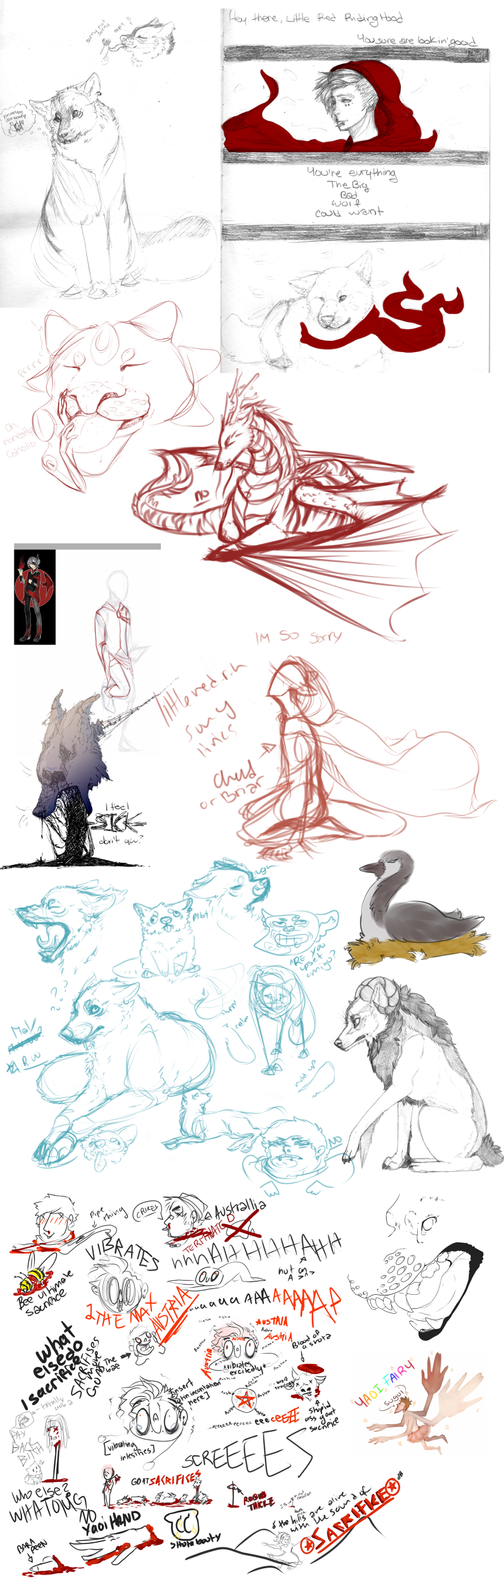 Sketch Dump 3 by PissBabyRat